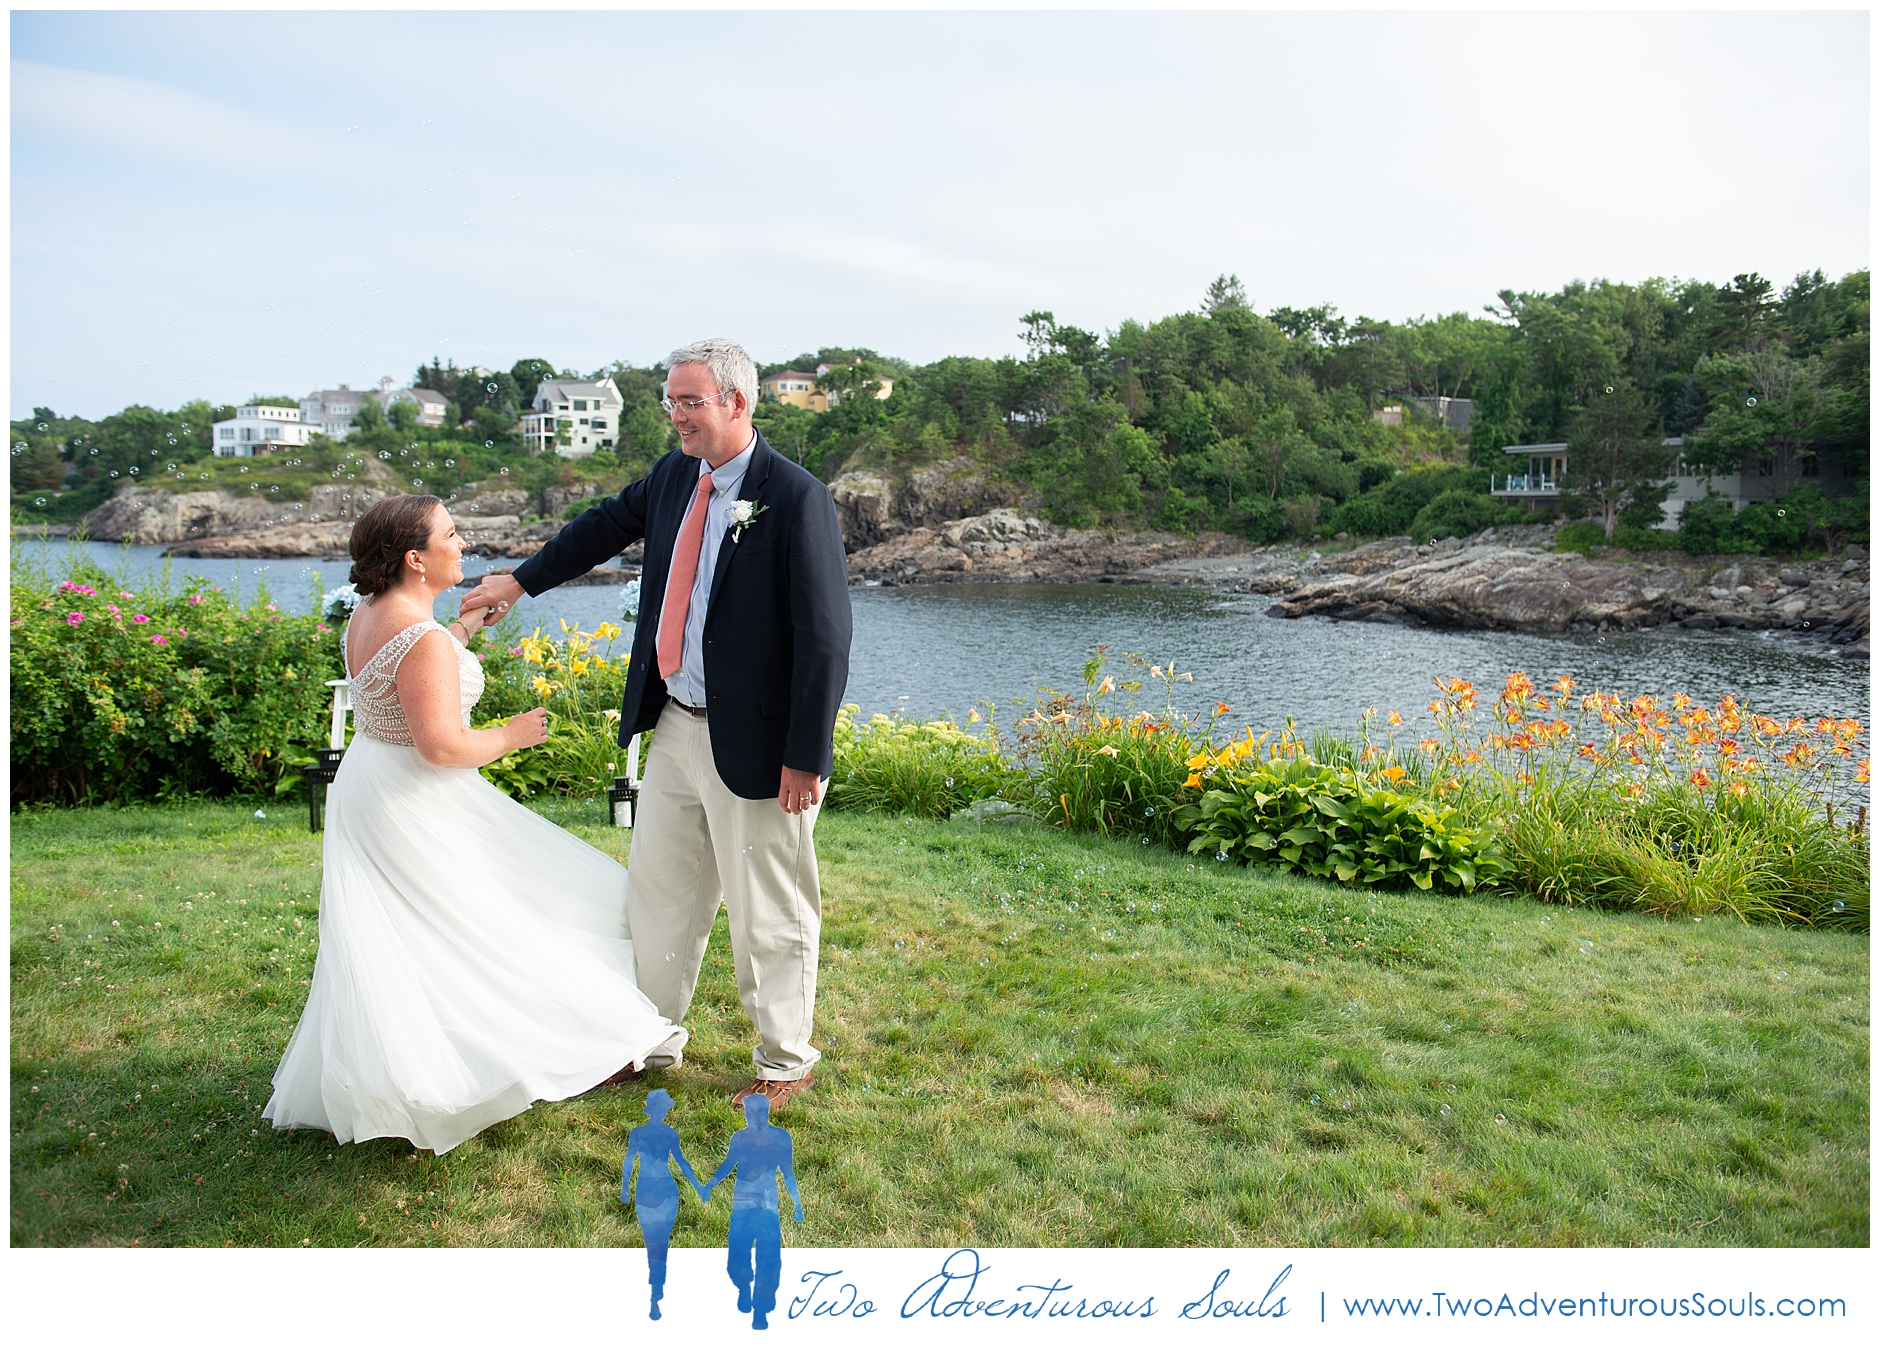 Maine Wedding Photographers, Ogunquit Wedding Photographers, Maine Elopement Photographers, Two Adventurous Souls-080619_0024.jpg